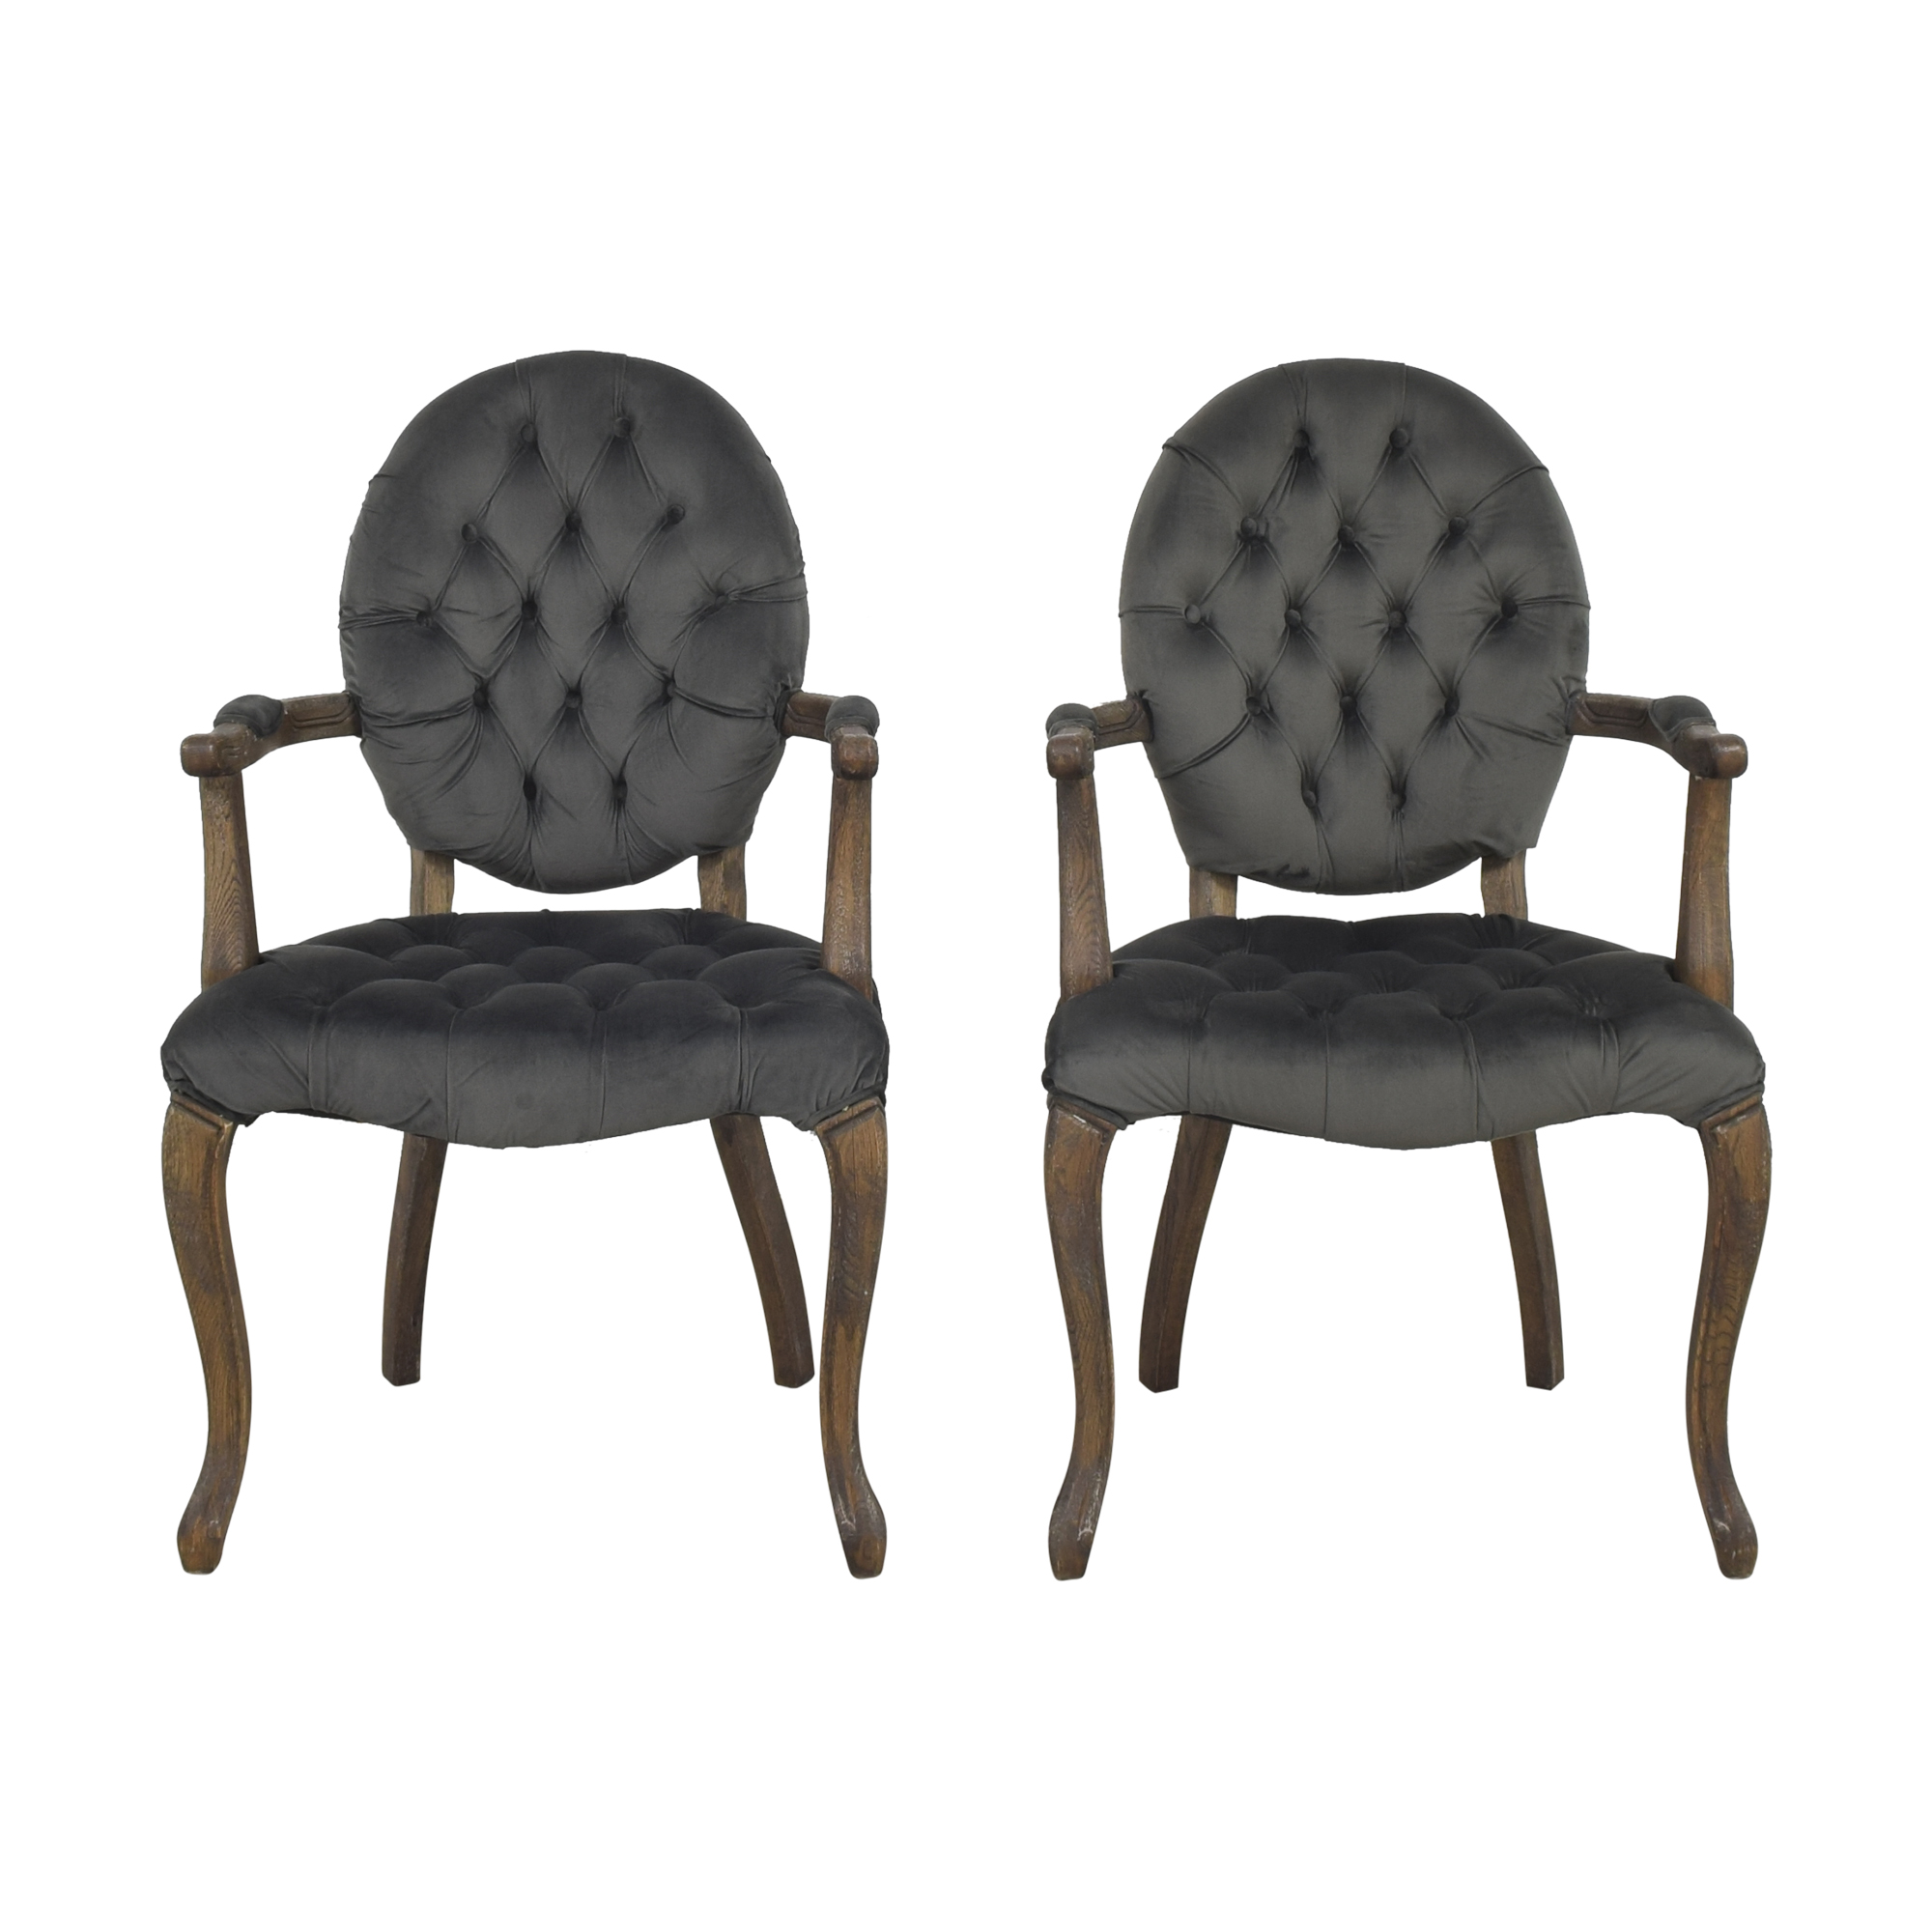 Christopher Knight Home Christopher Knight Home Marianne Dining Arm Chairs pa